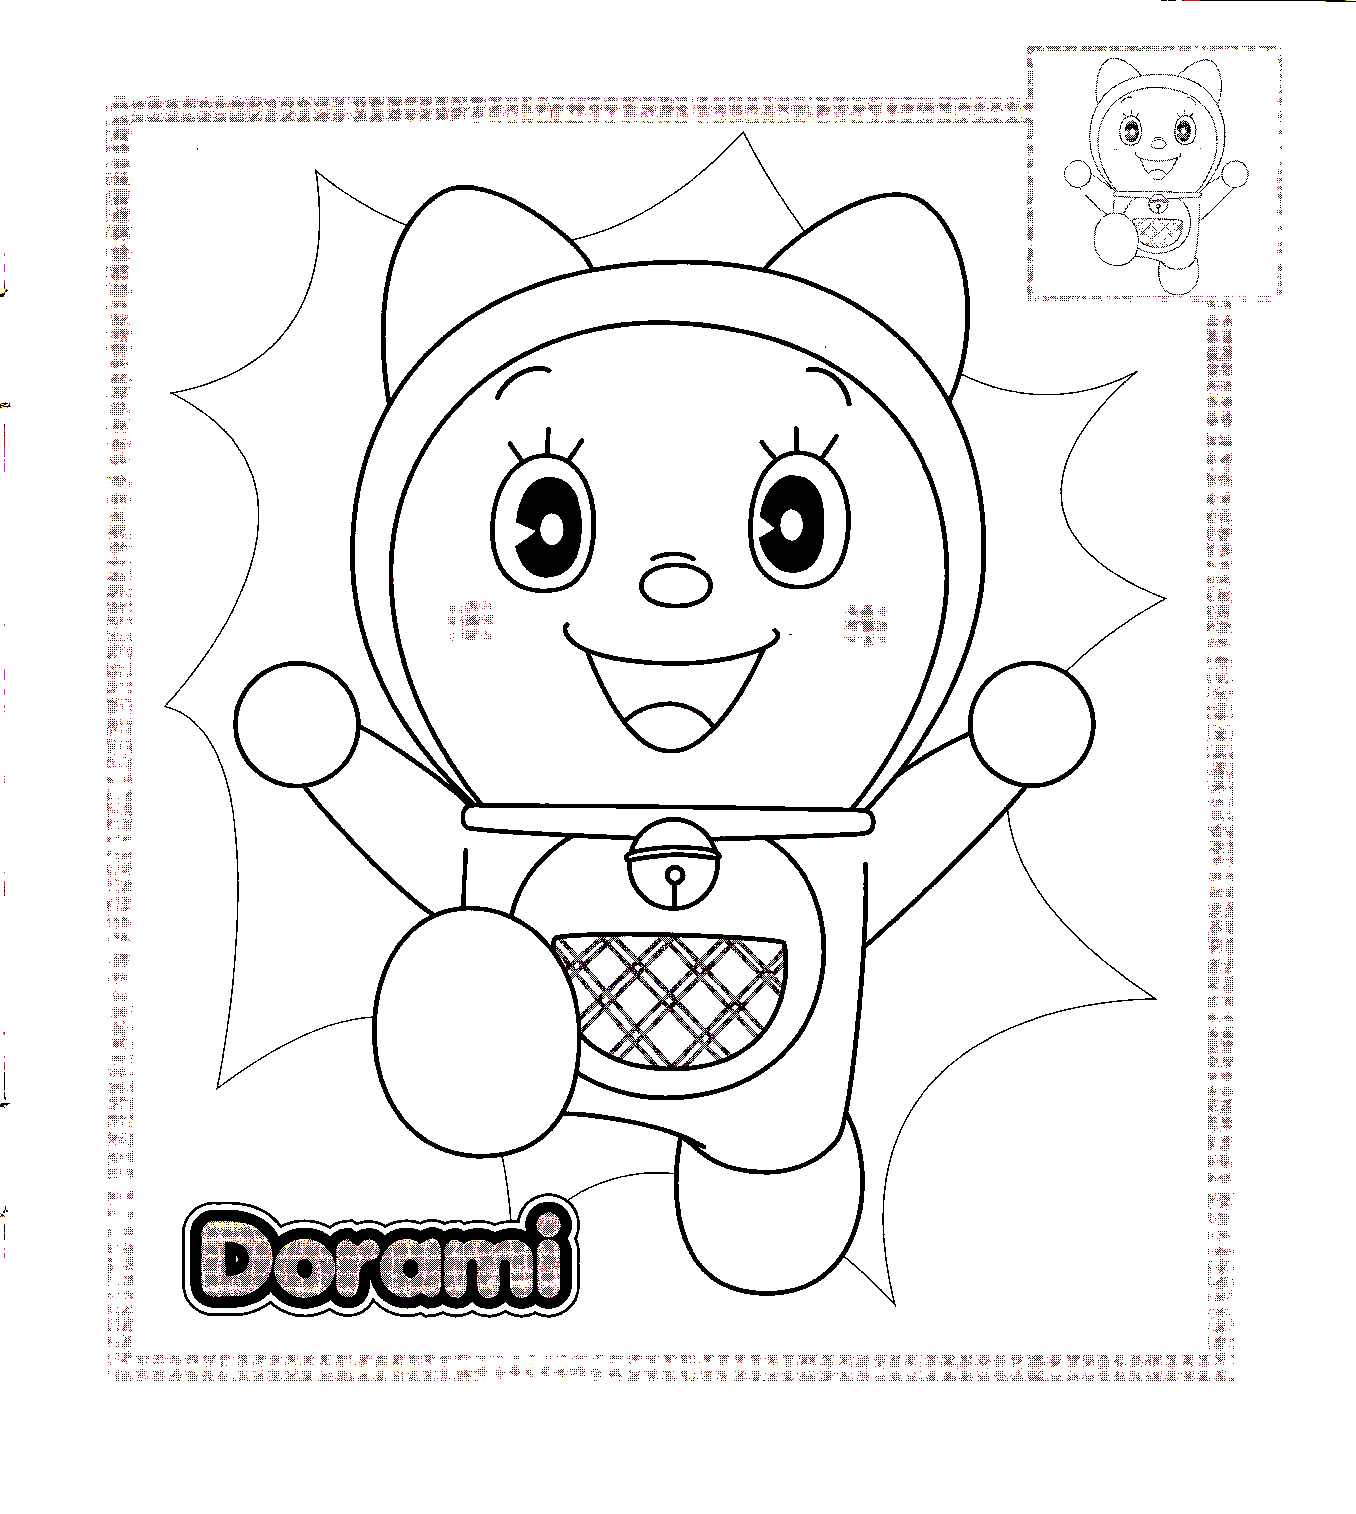 Doraemon Coloring in Pages 2